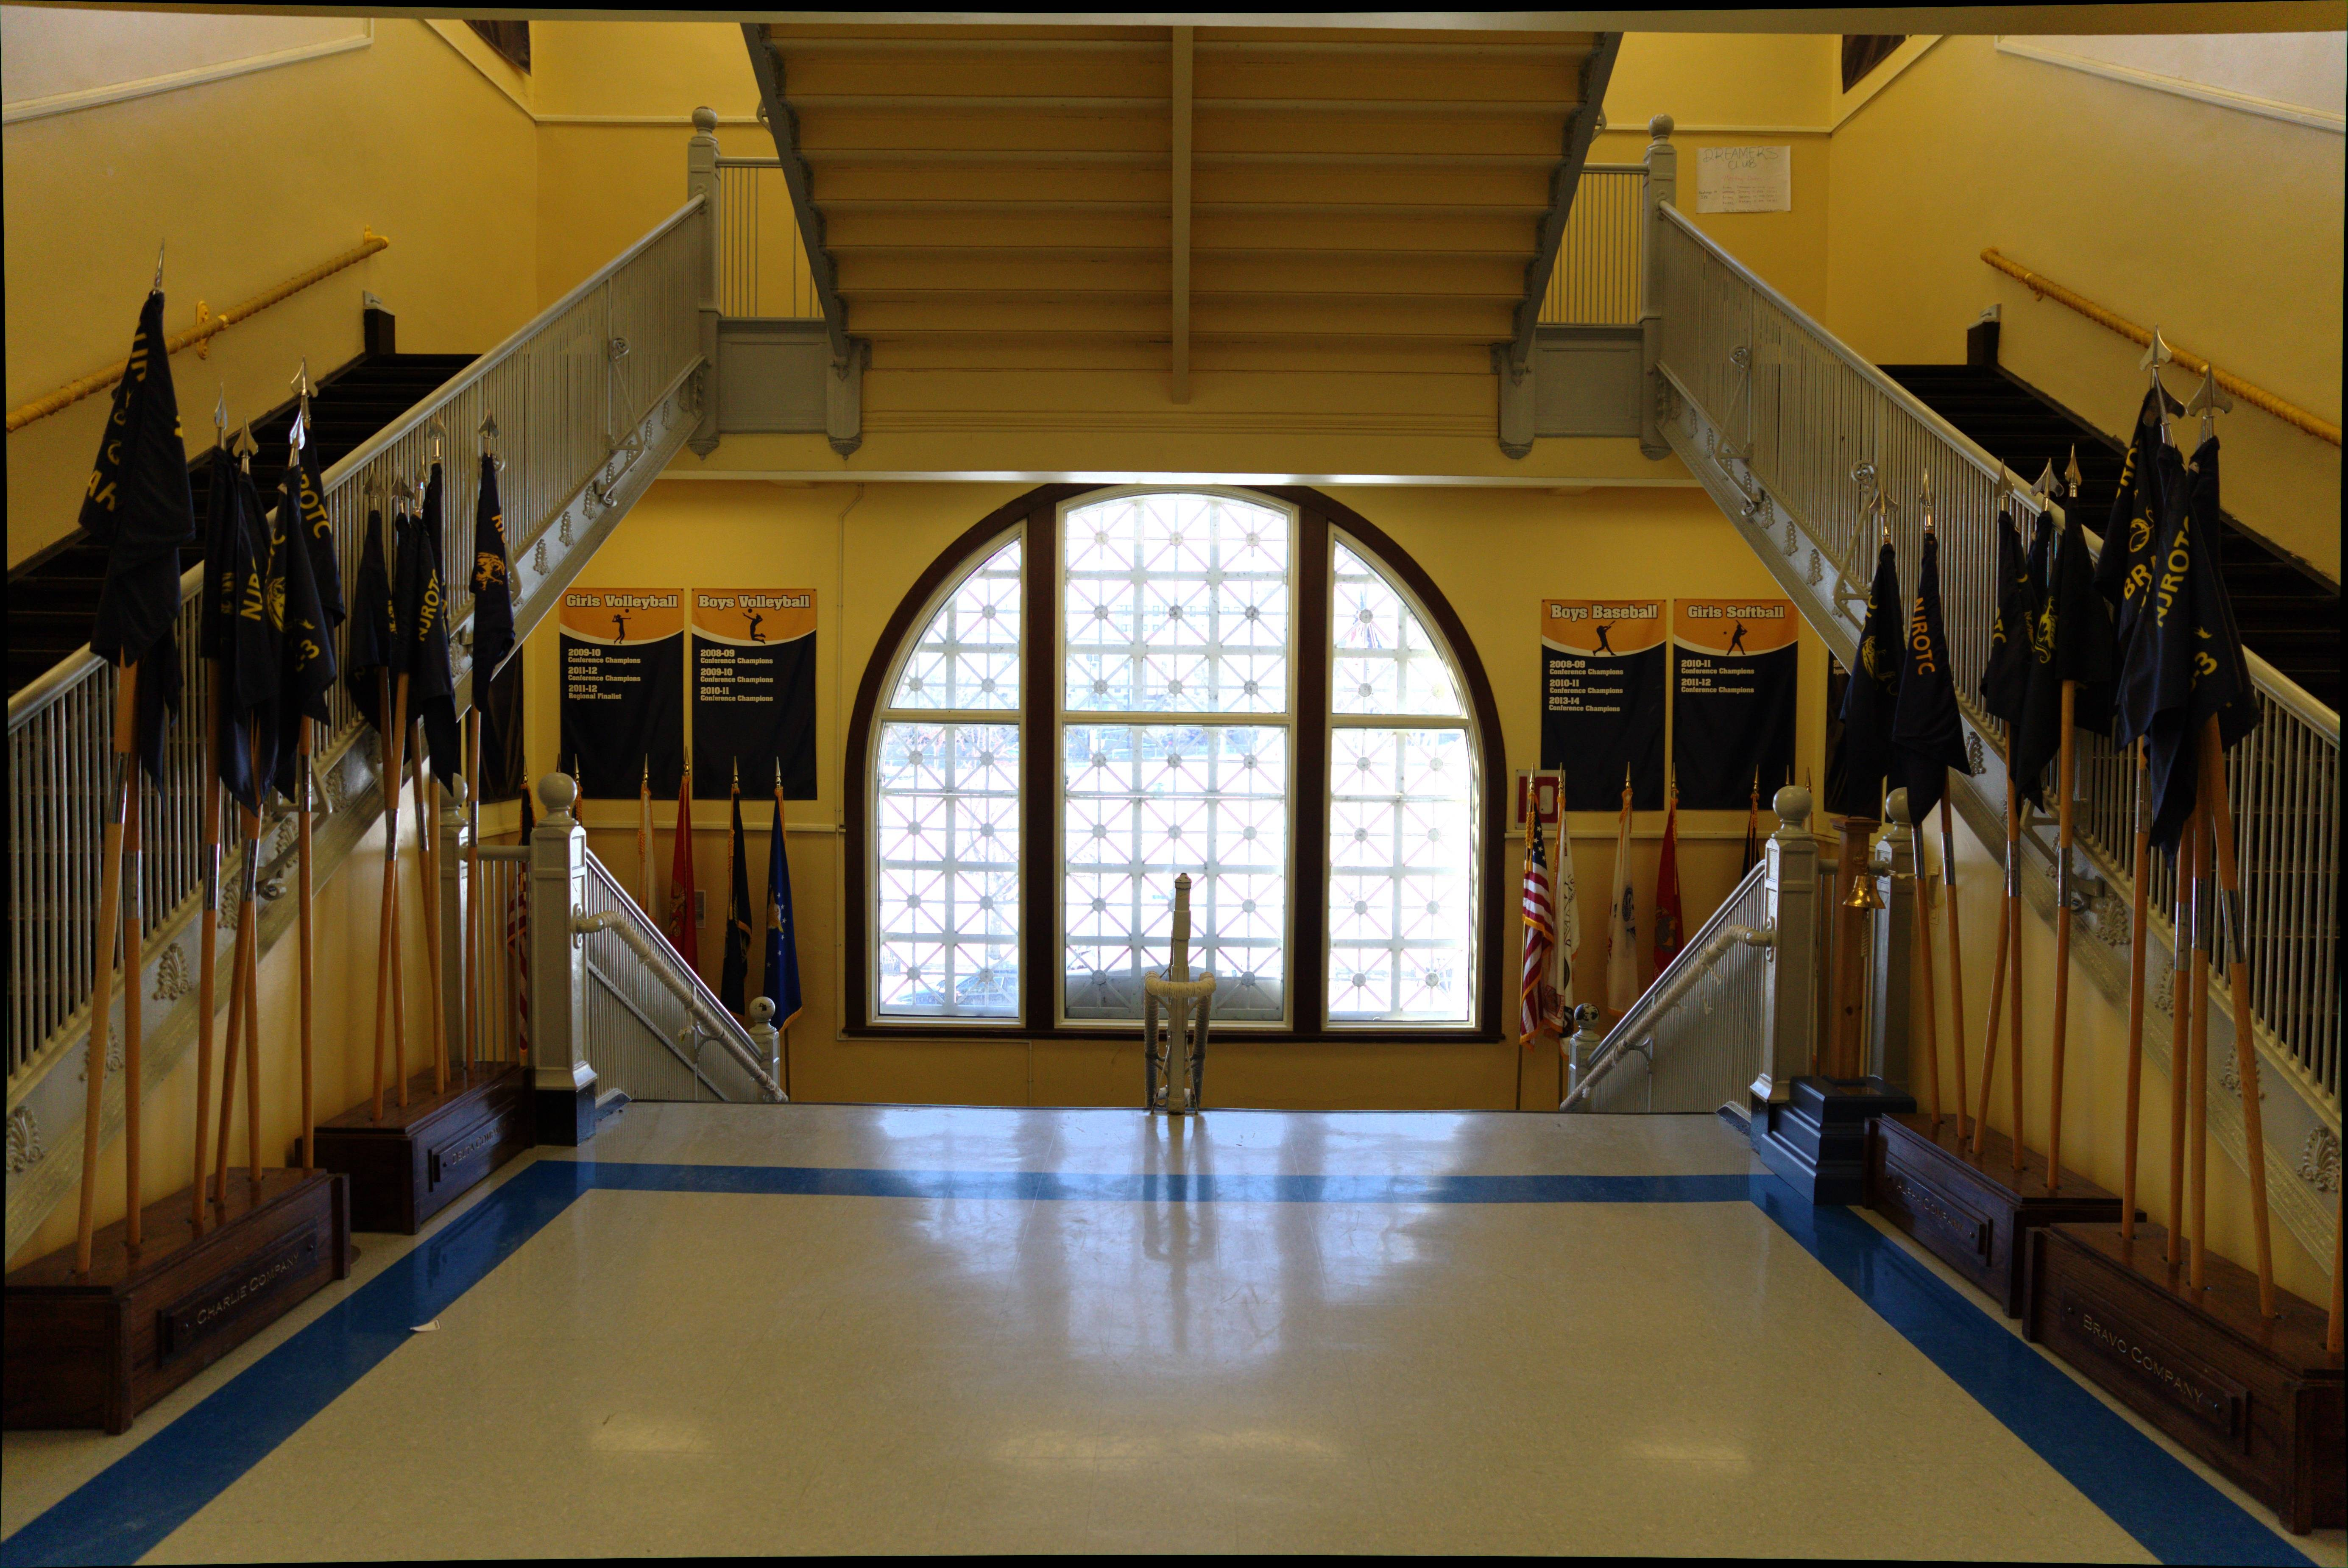 Large picture window on the second deck of the school